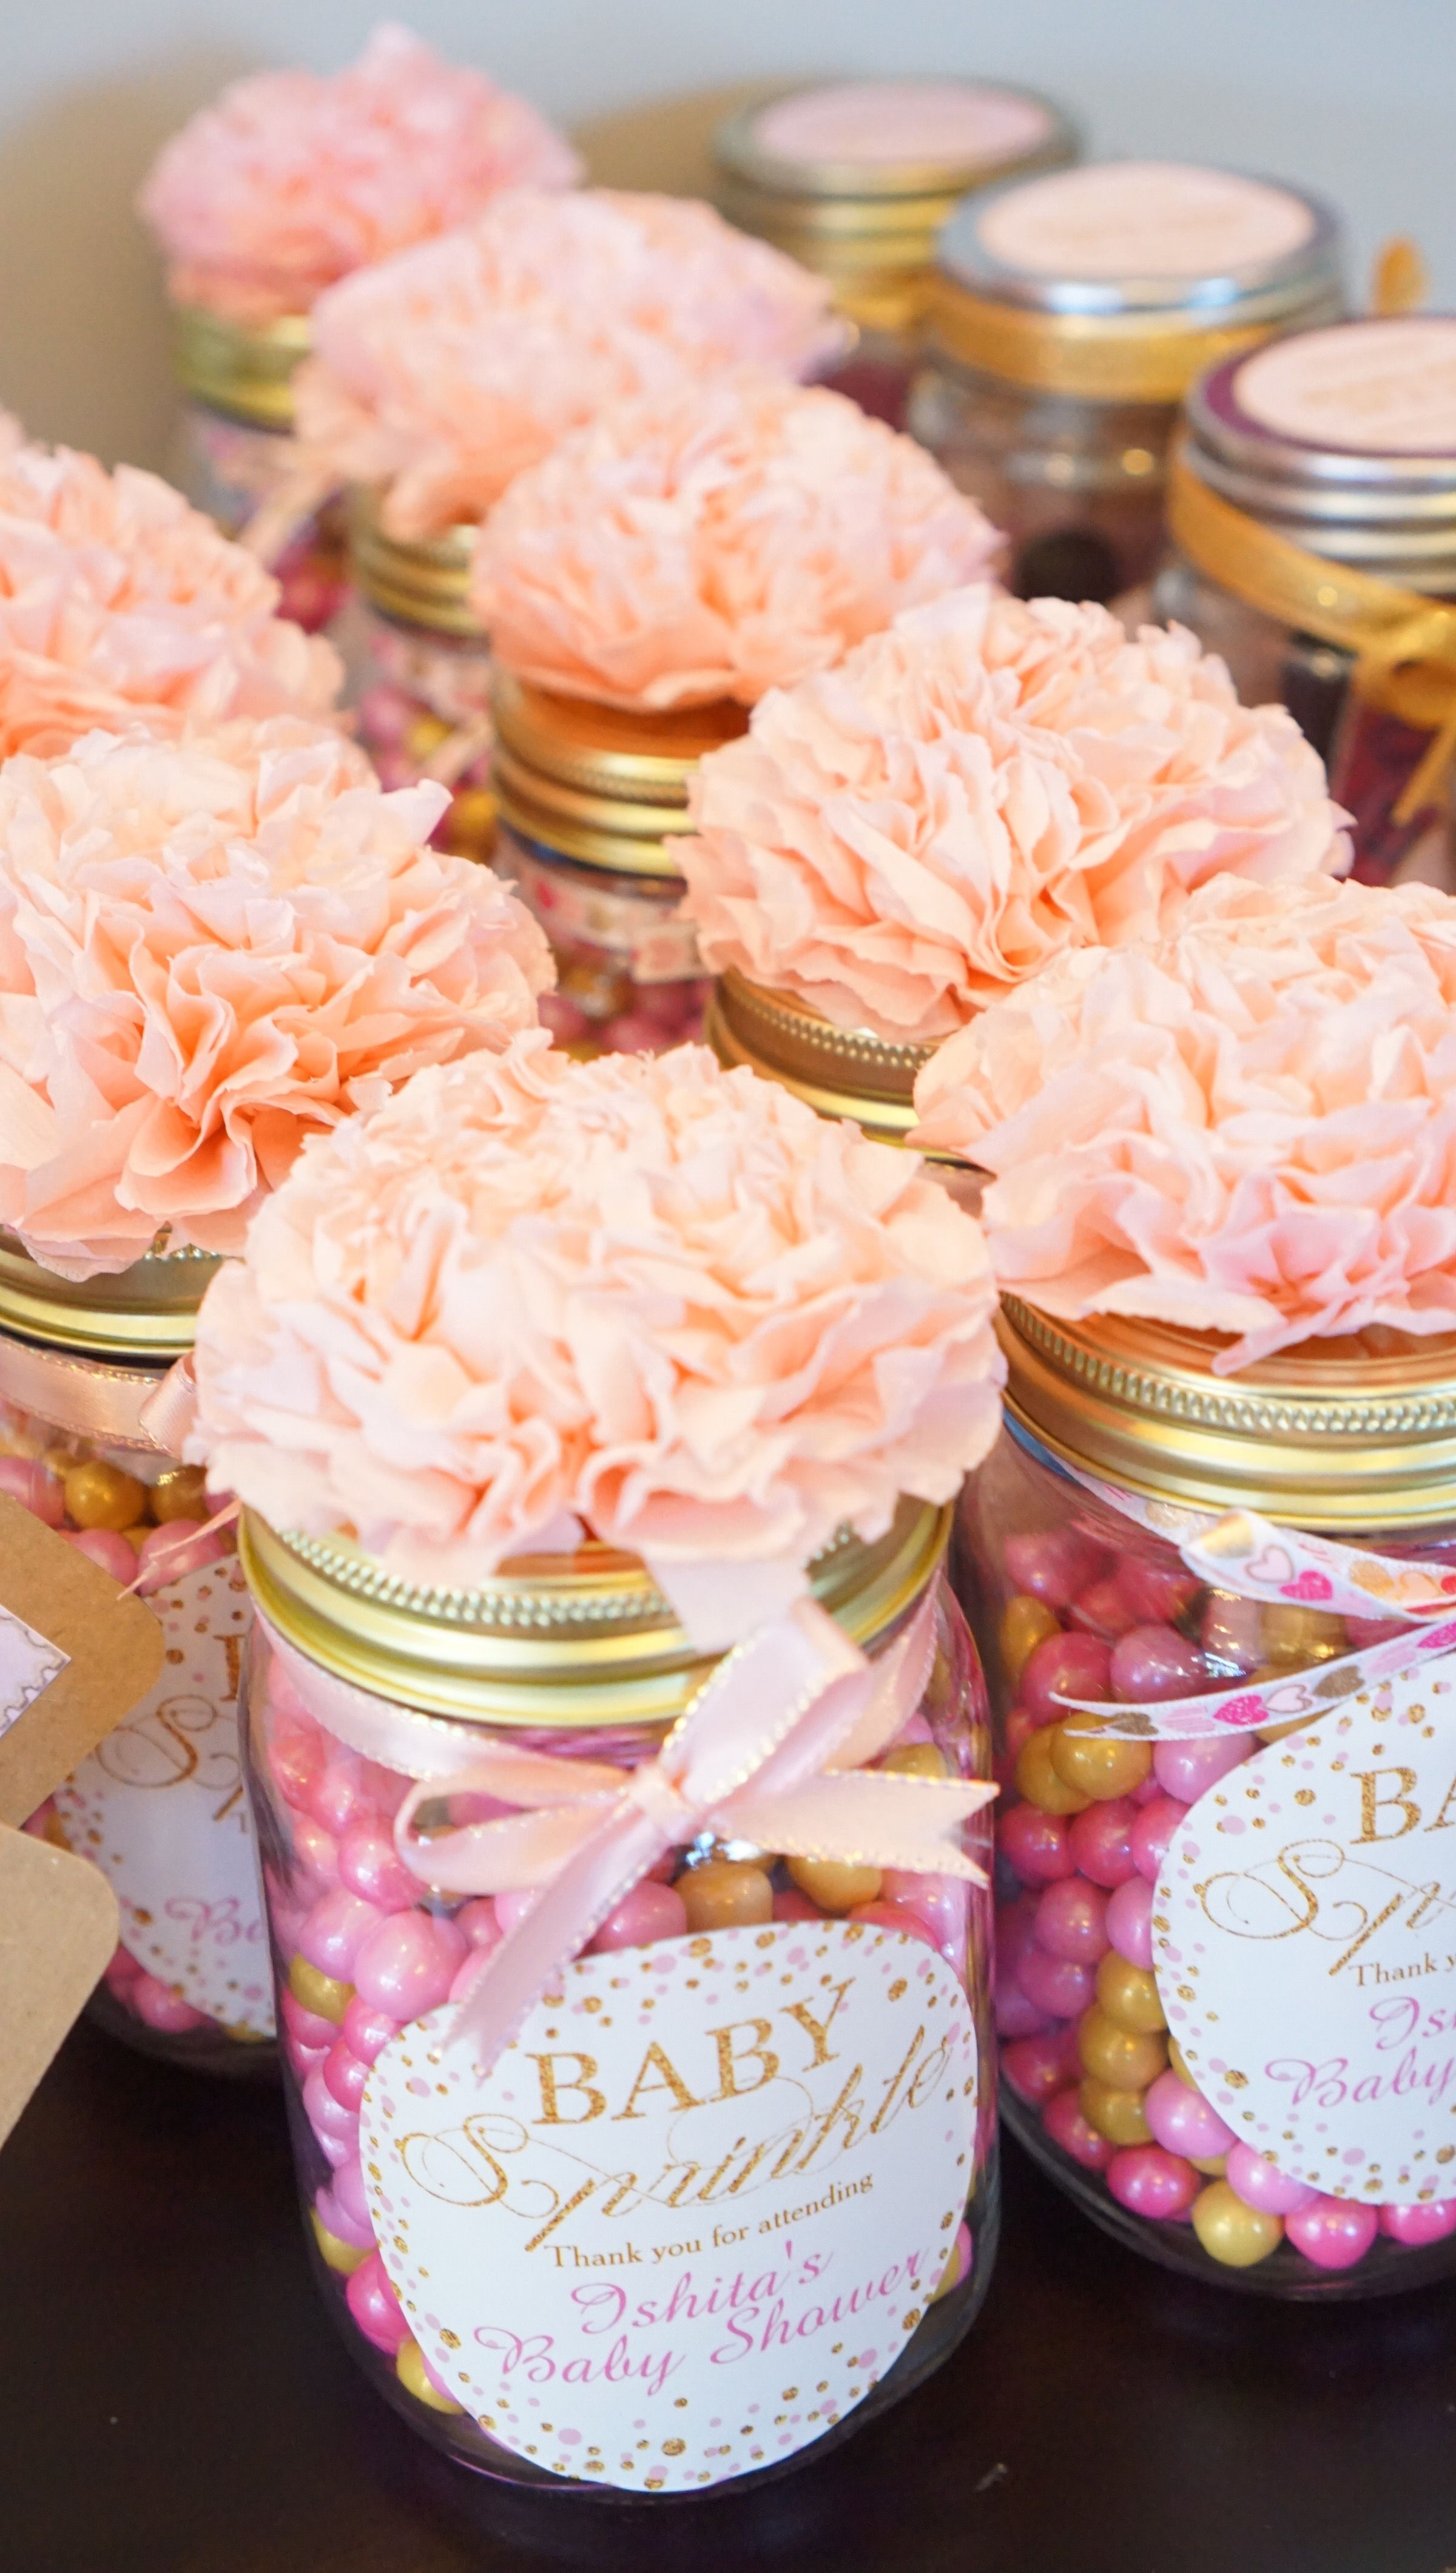 55 Easy Amp Unique Baby Shower Favor Ideas To Fit Any Budget